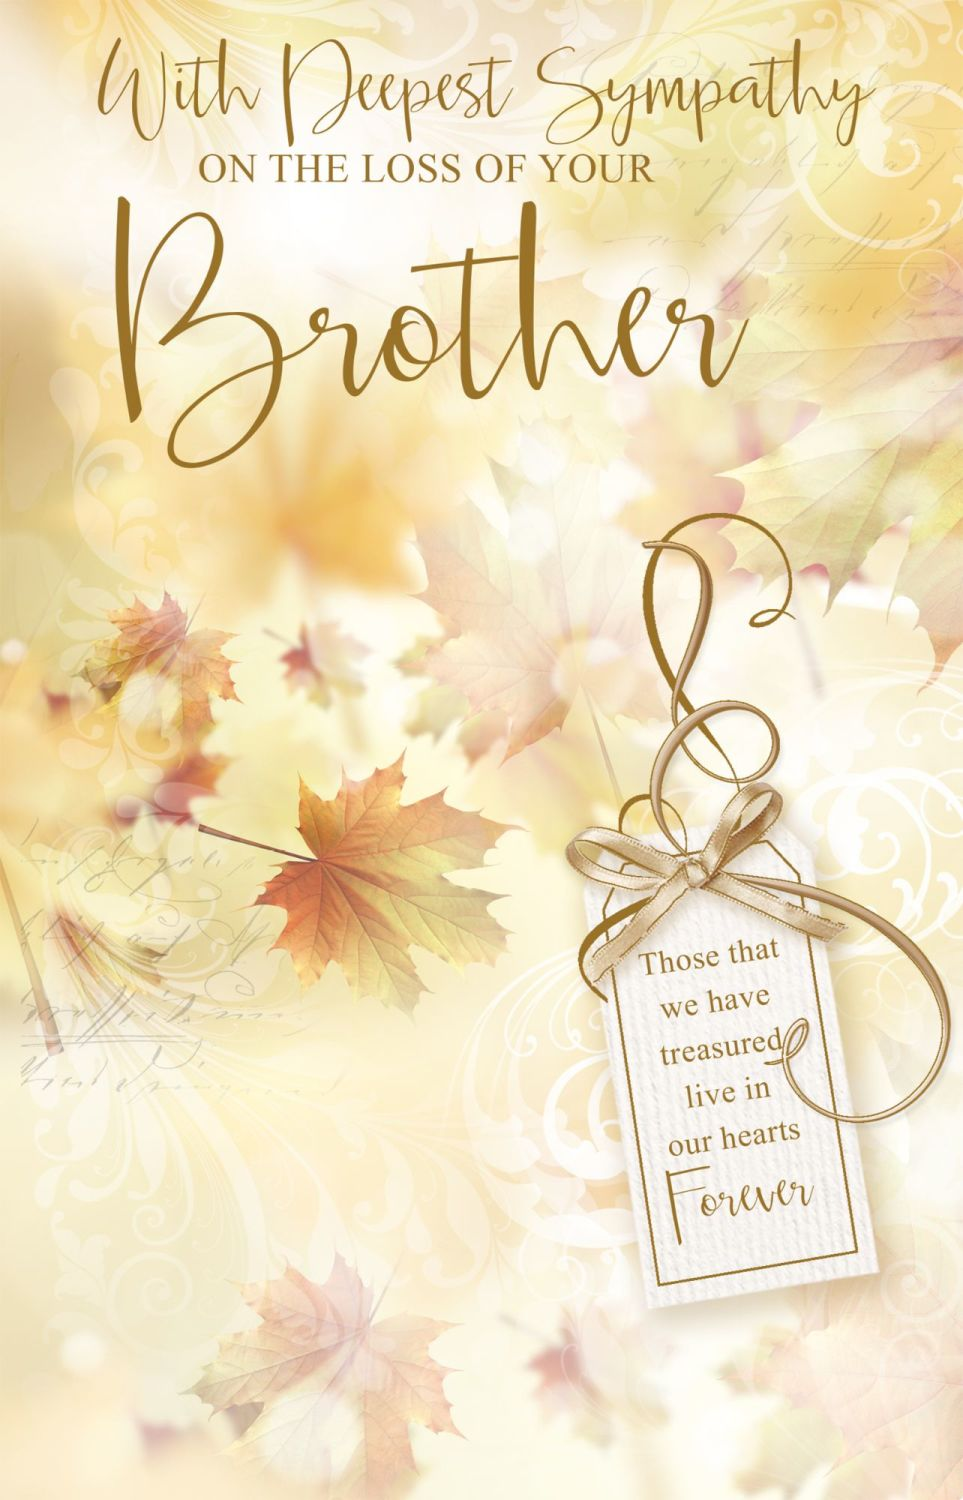 With Deepest Sympathy Card -  LIVE In Our HEARTS - LOSS Of BROTHER Cards -